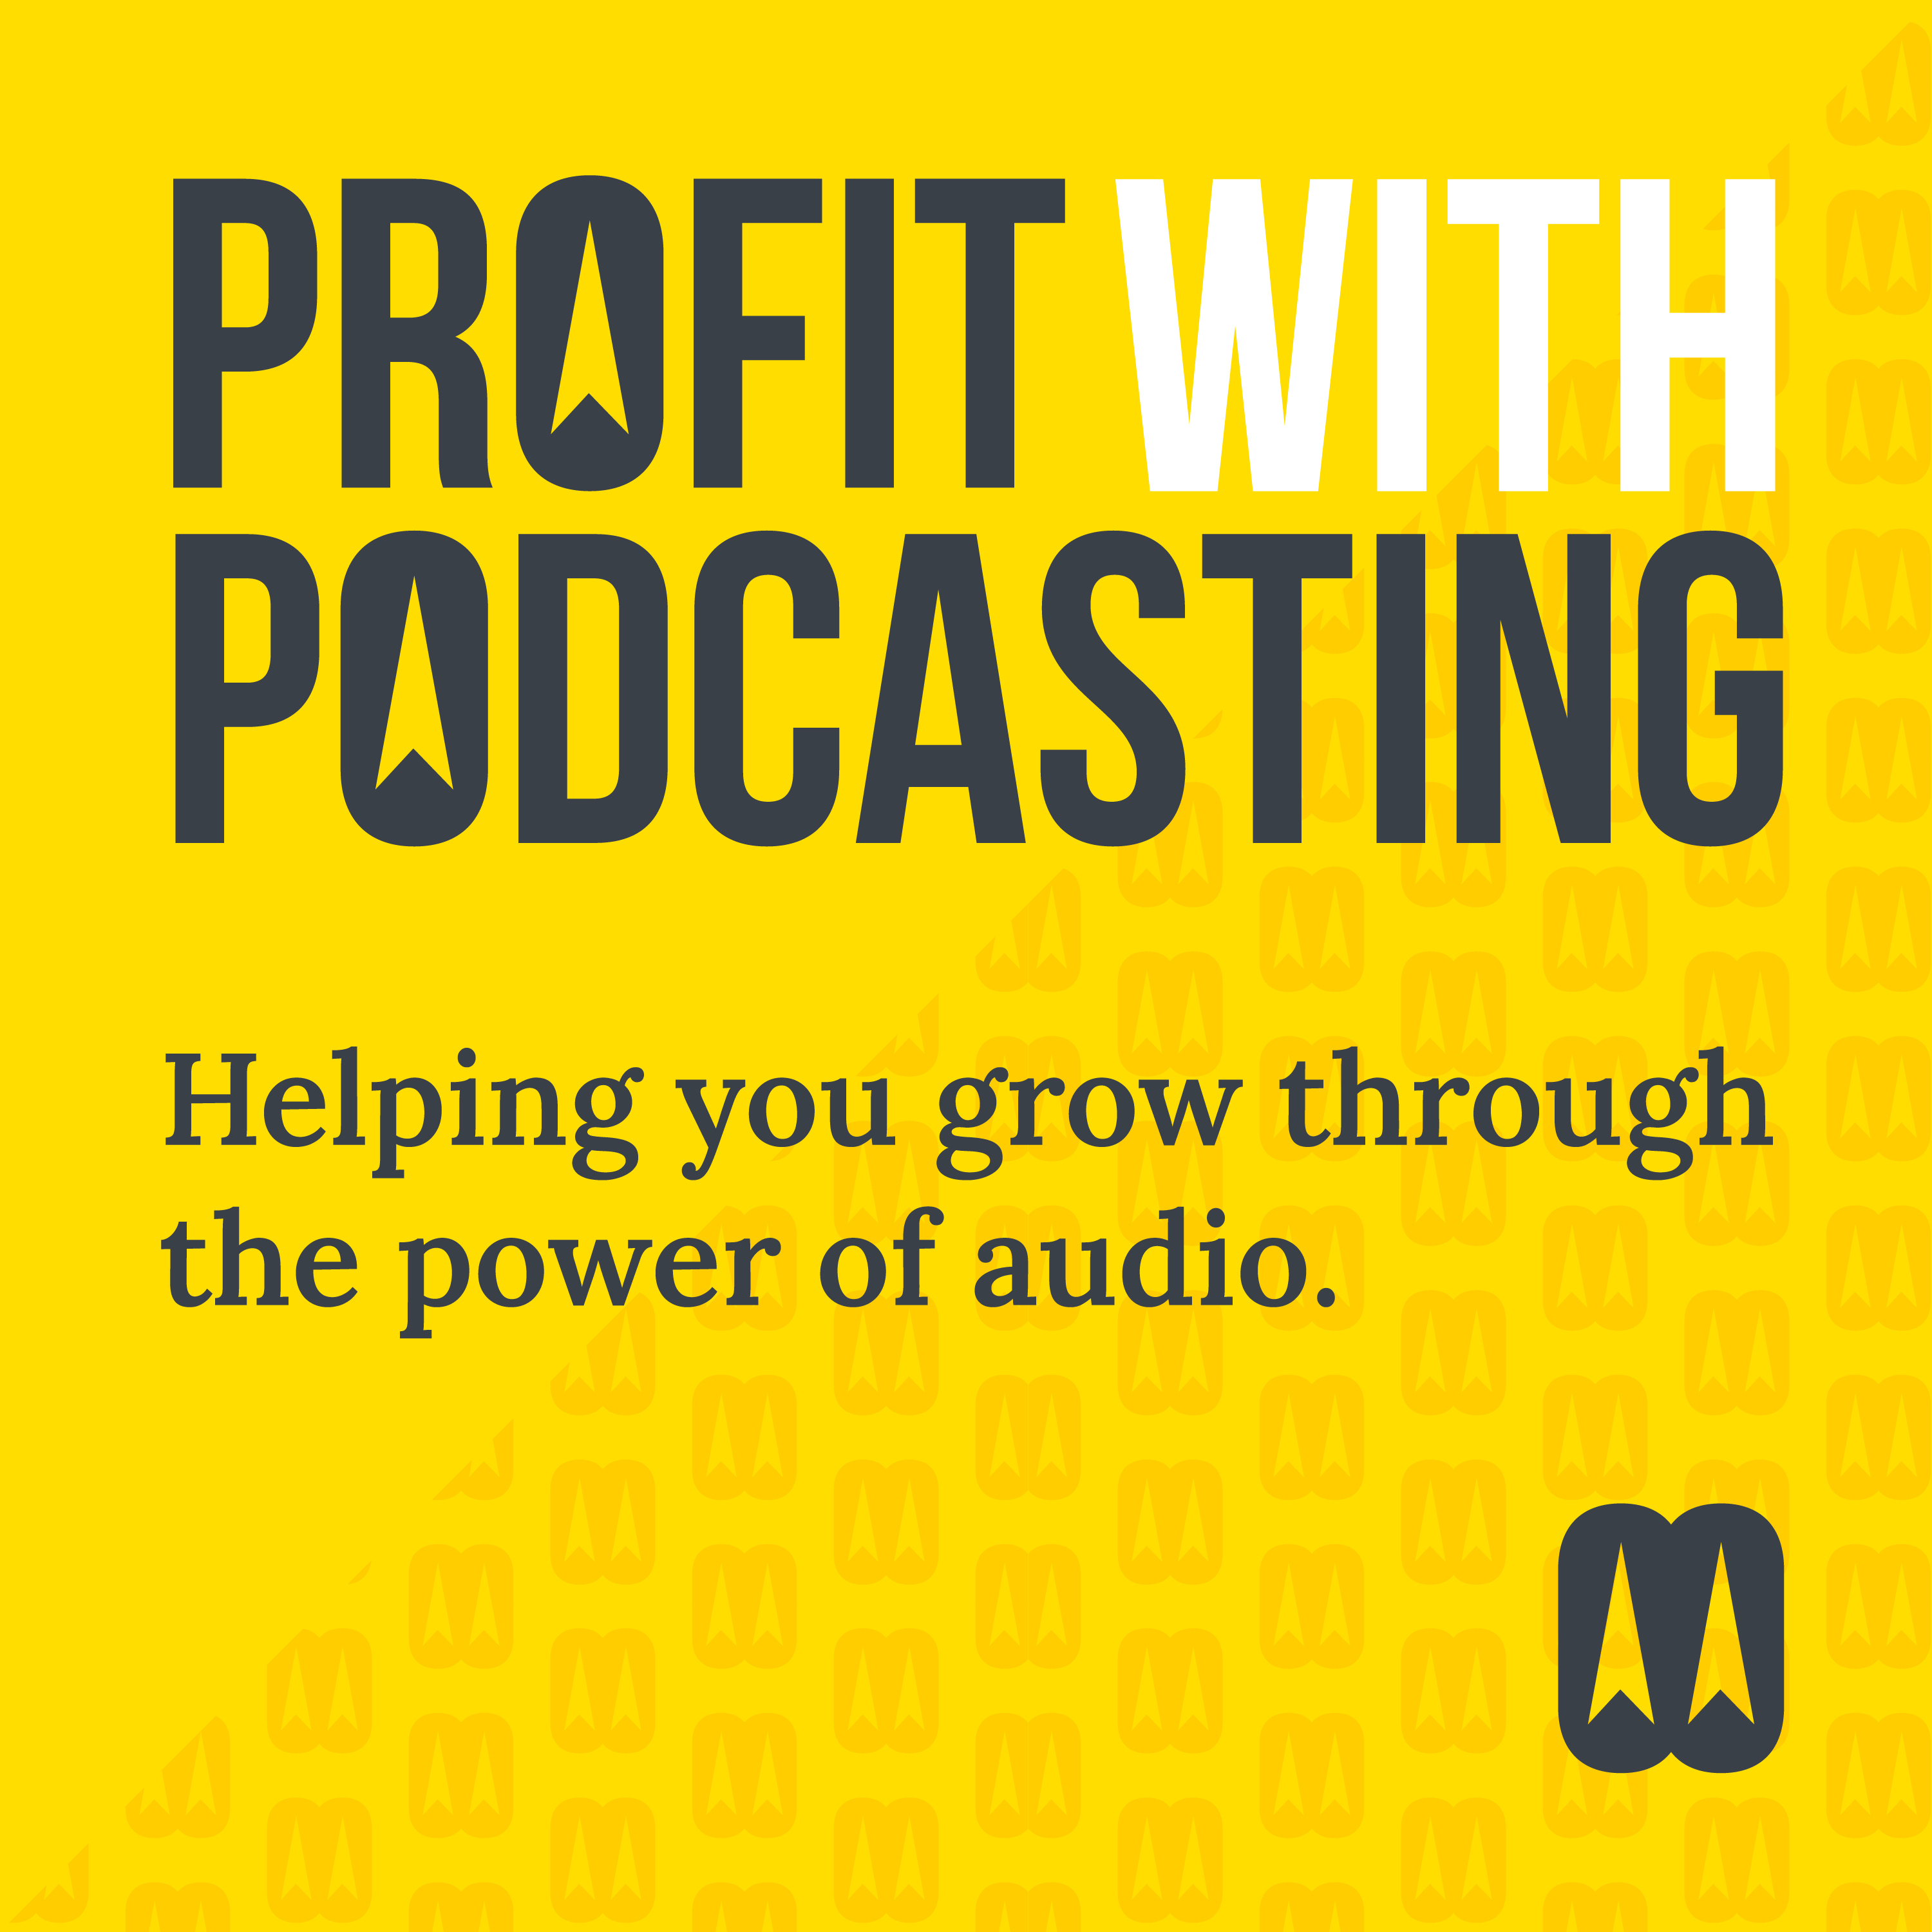 Artwork for podcast Profit with Podcasting